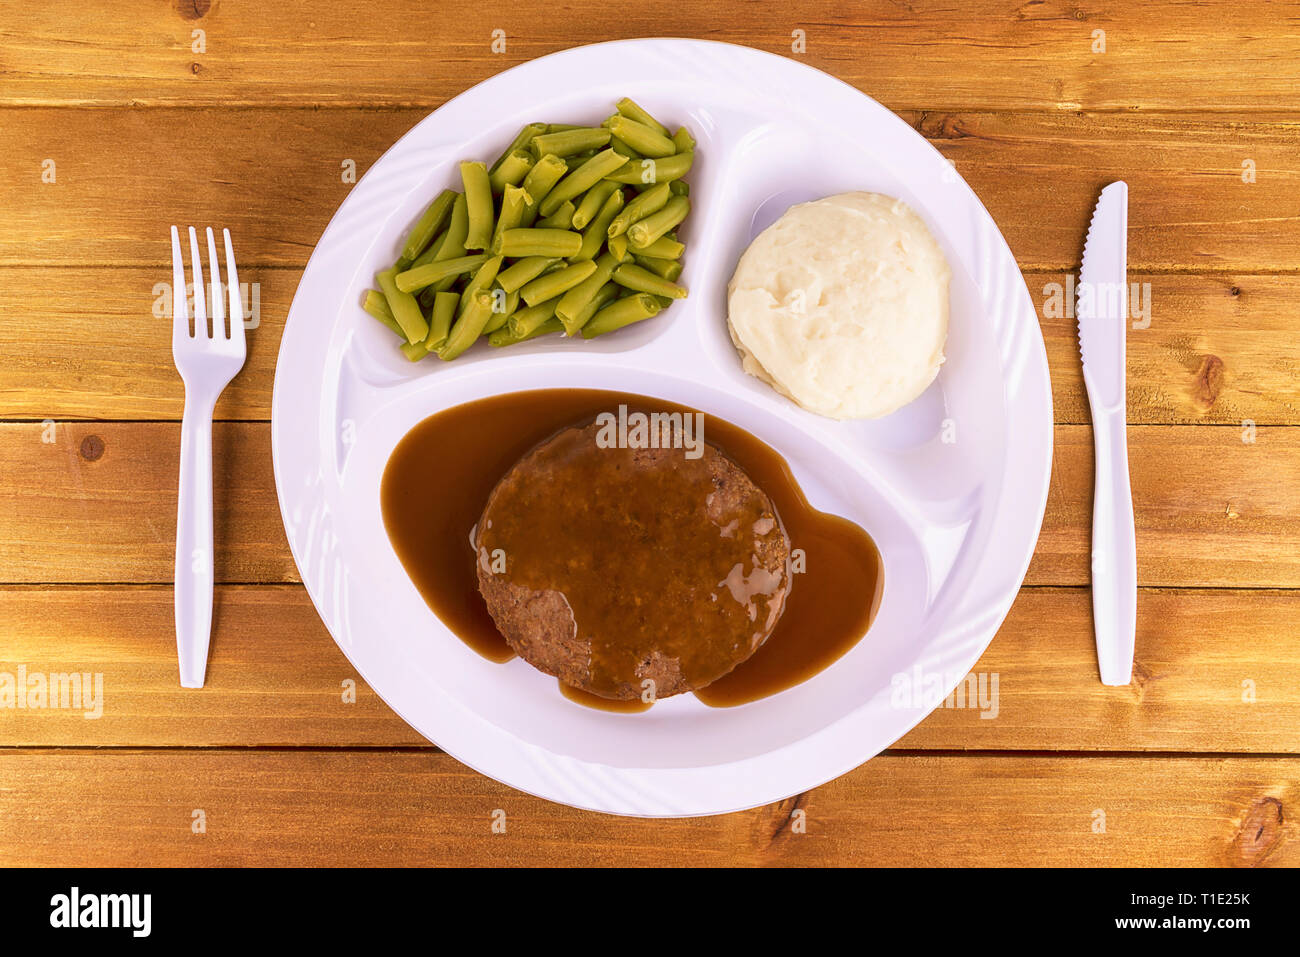 Beef patty tv dinner on wooden background, top view. - Stock Image